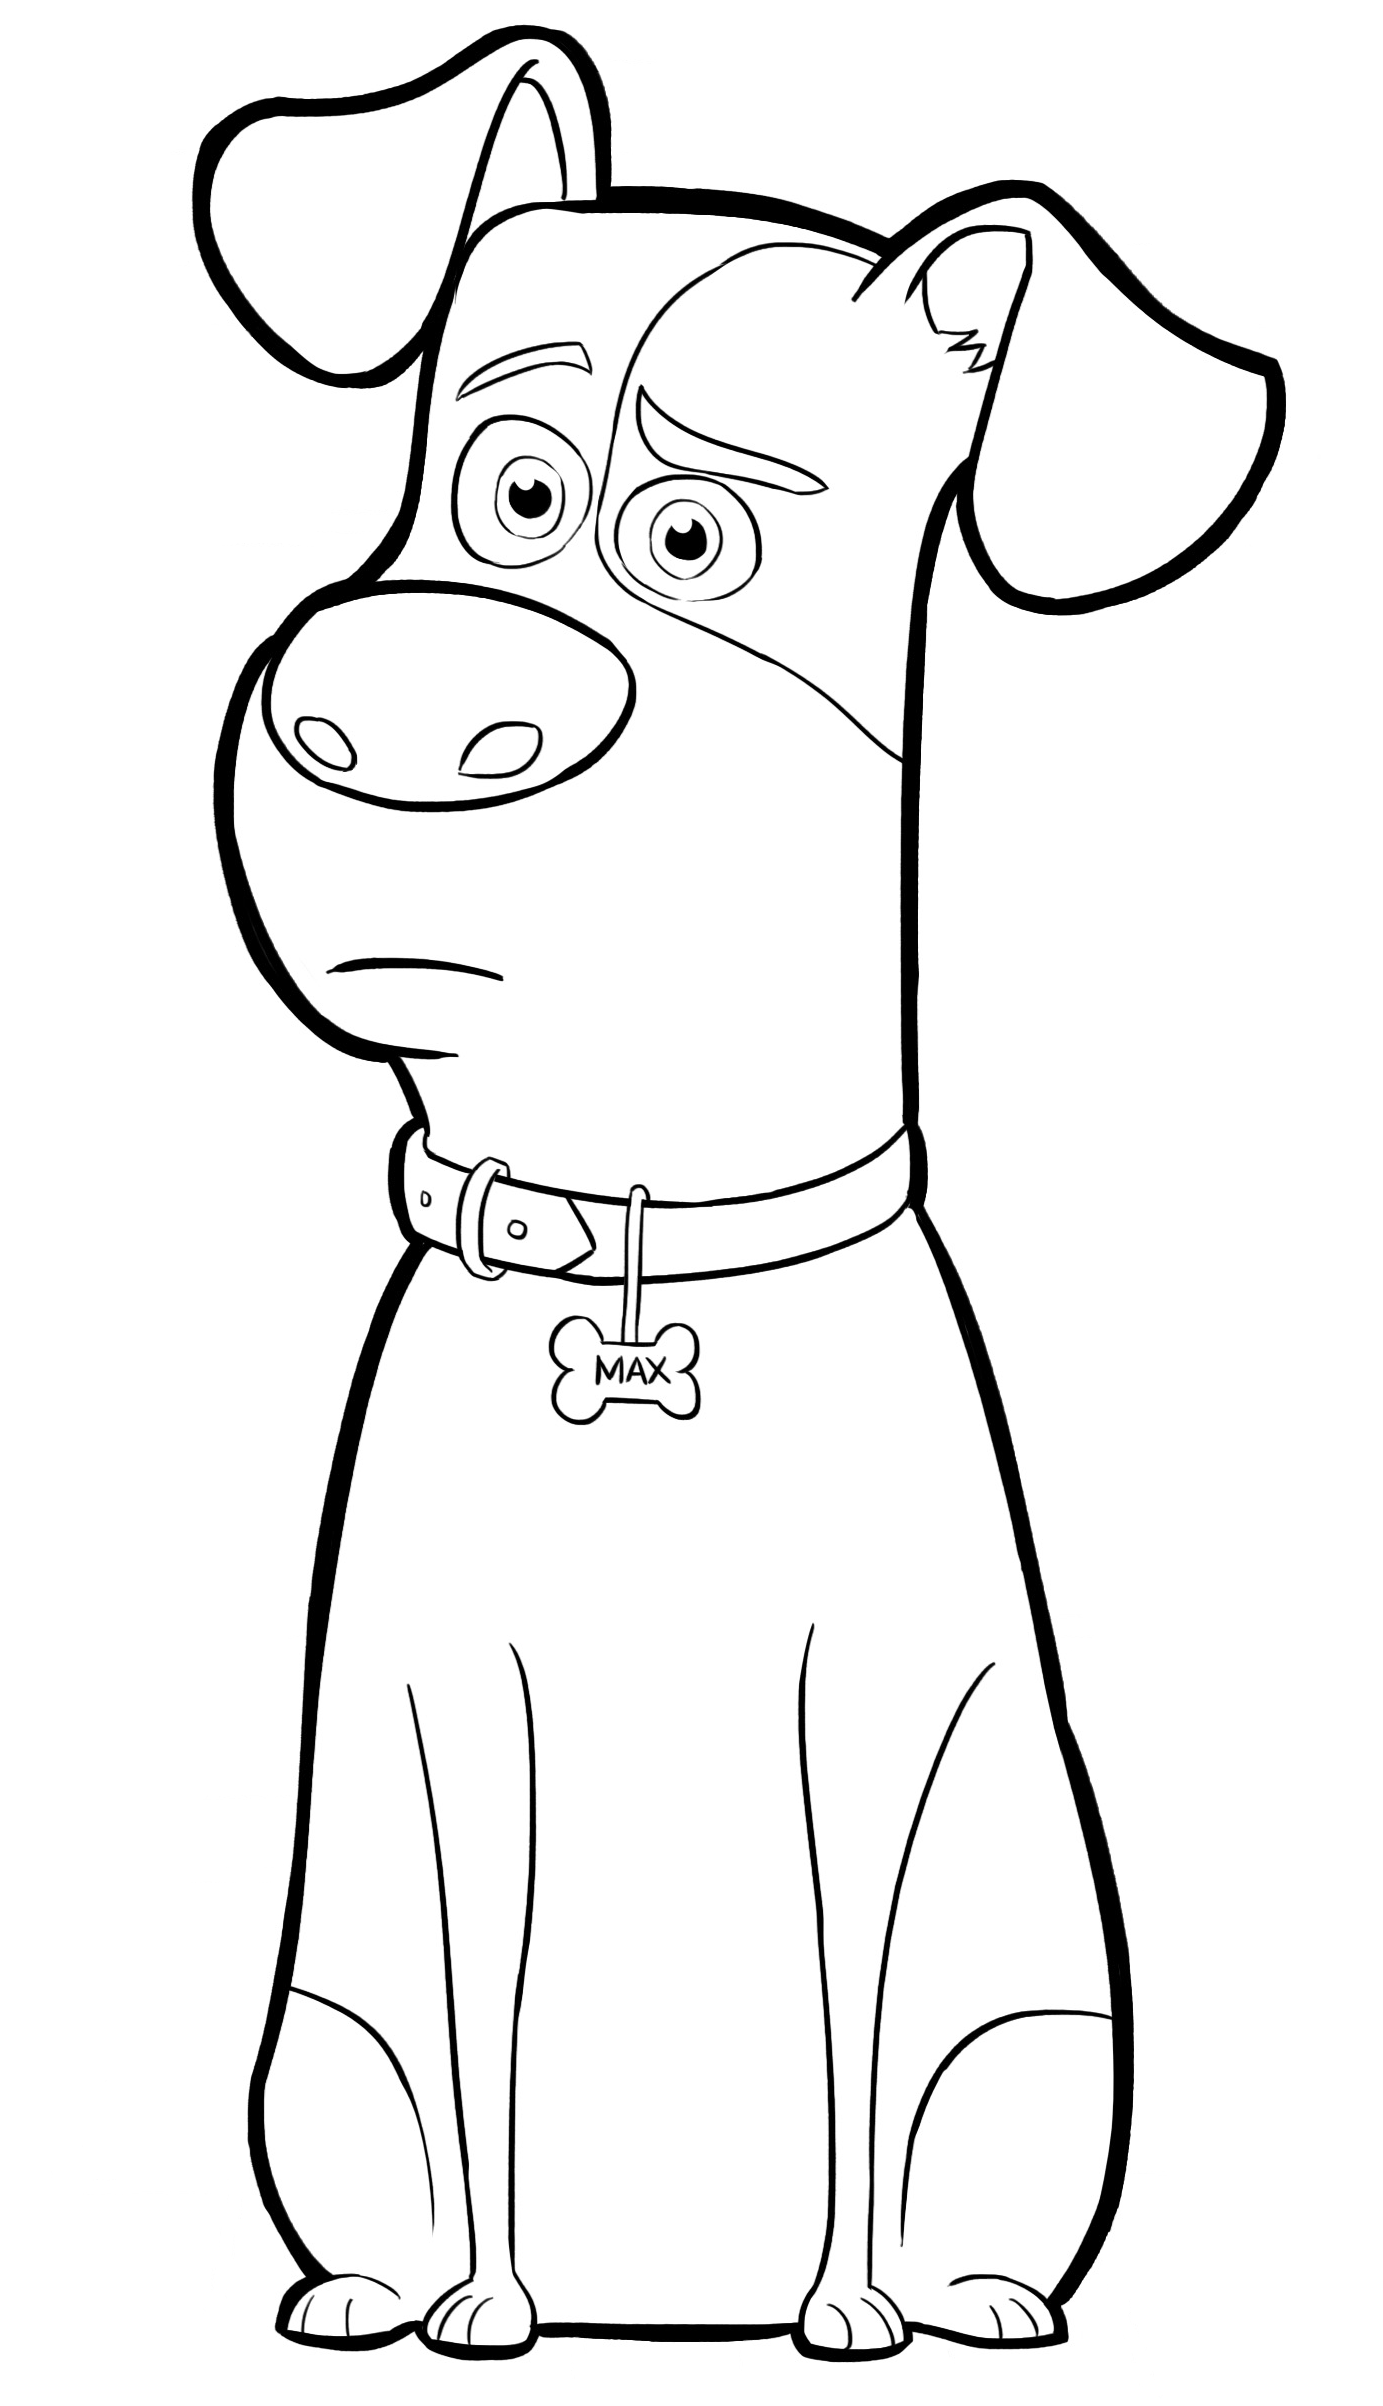 coloring pages from photos - photo#13